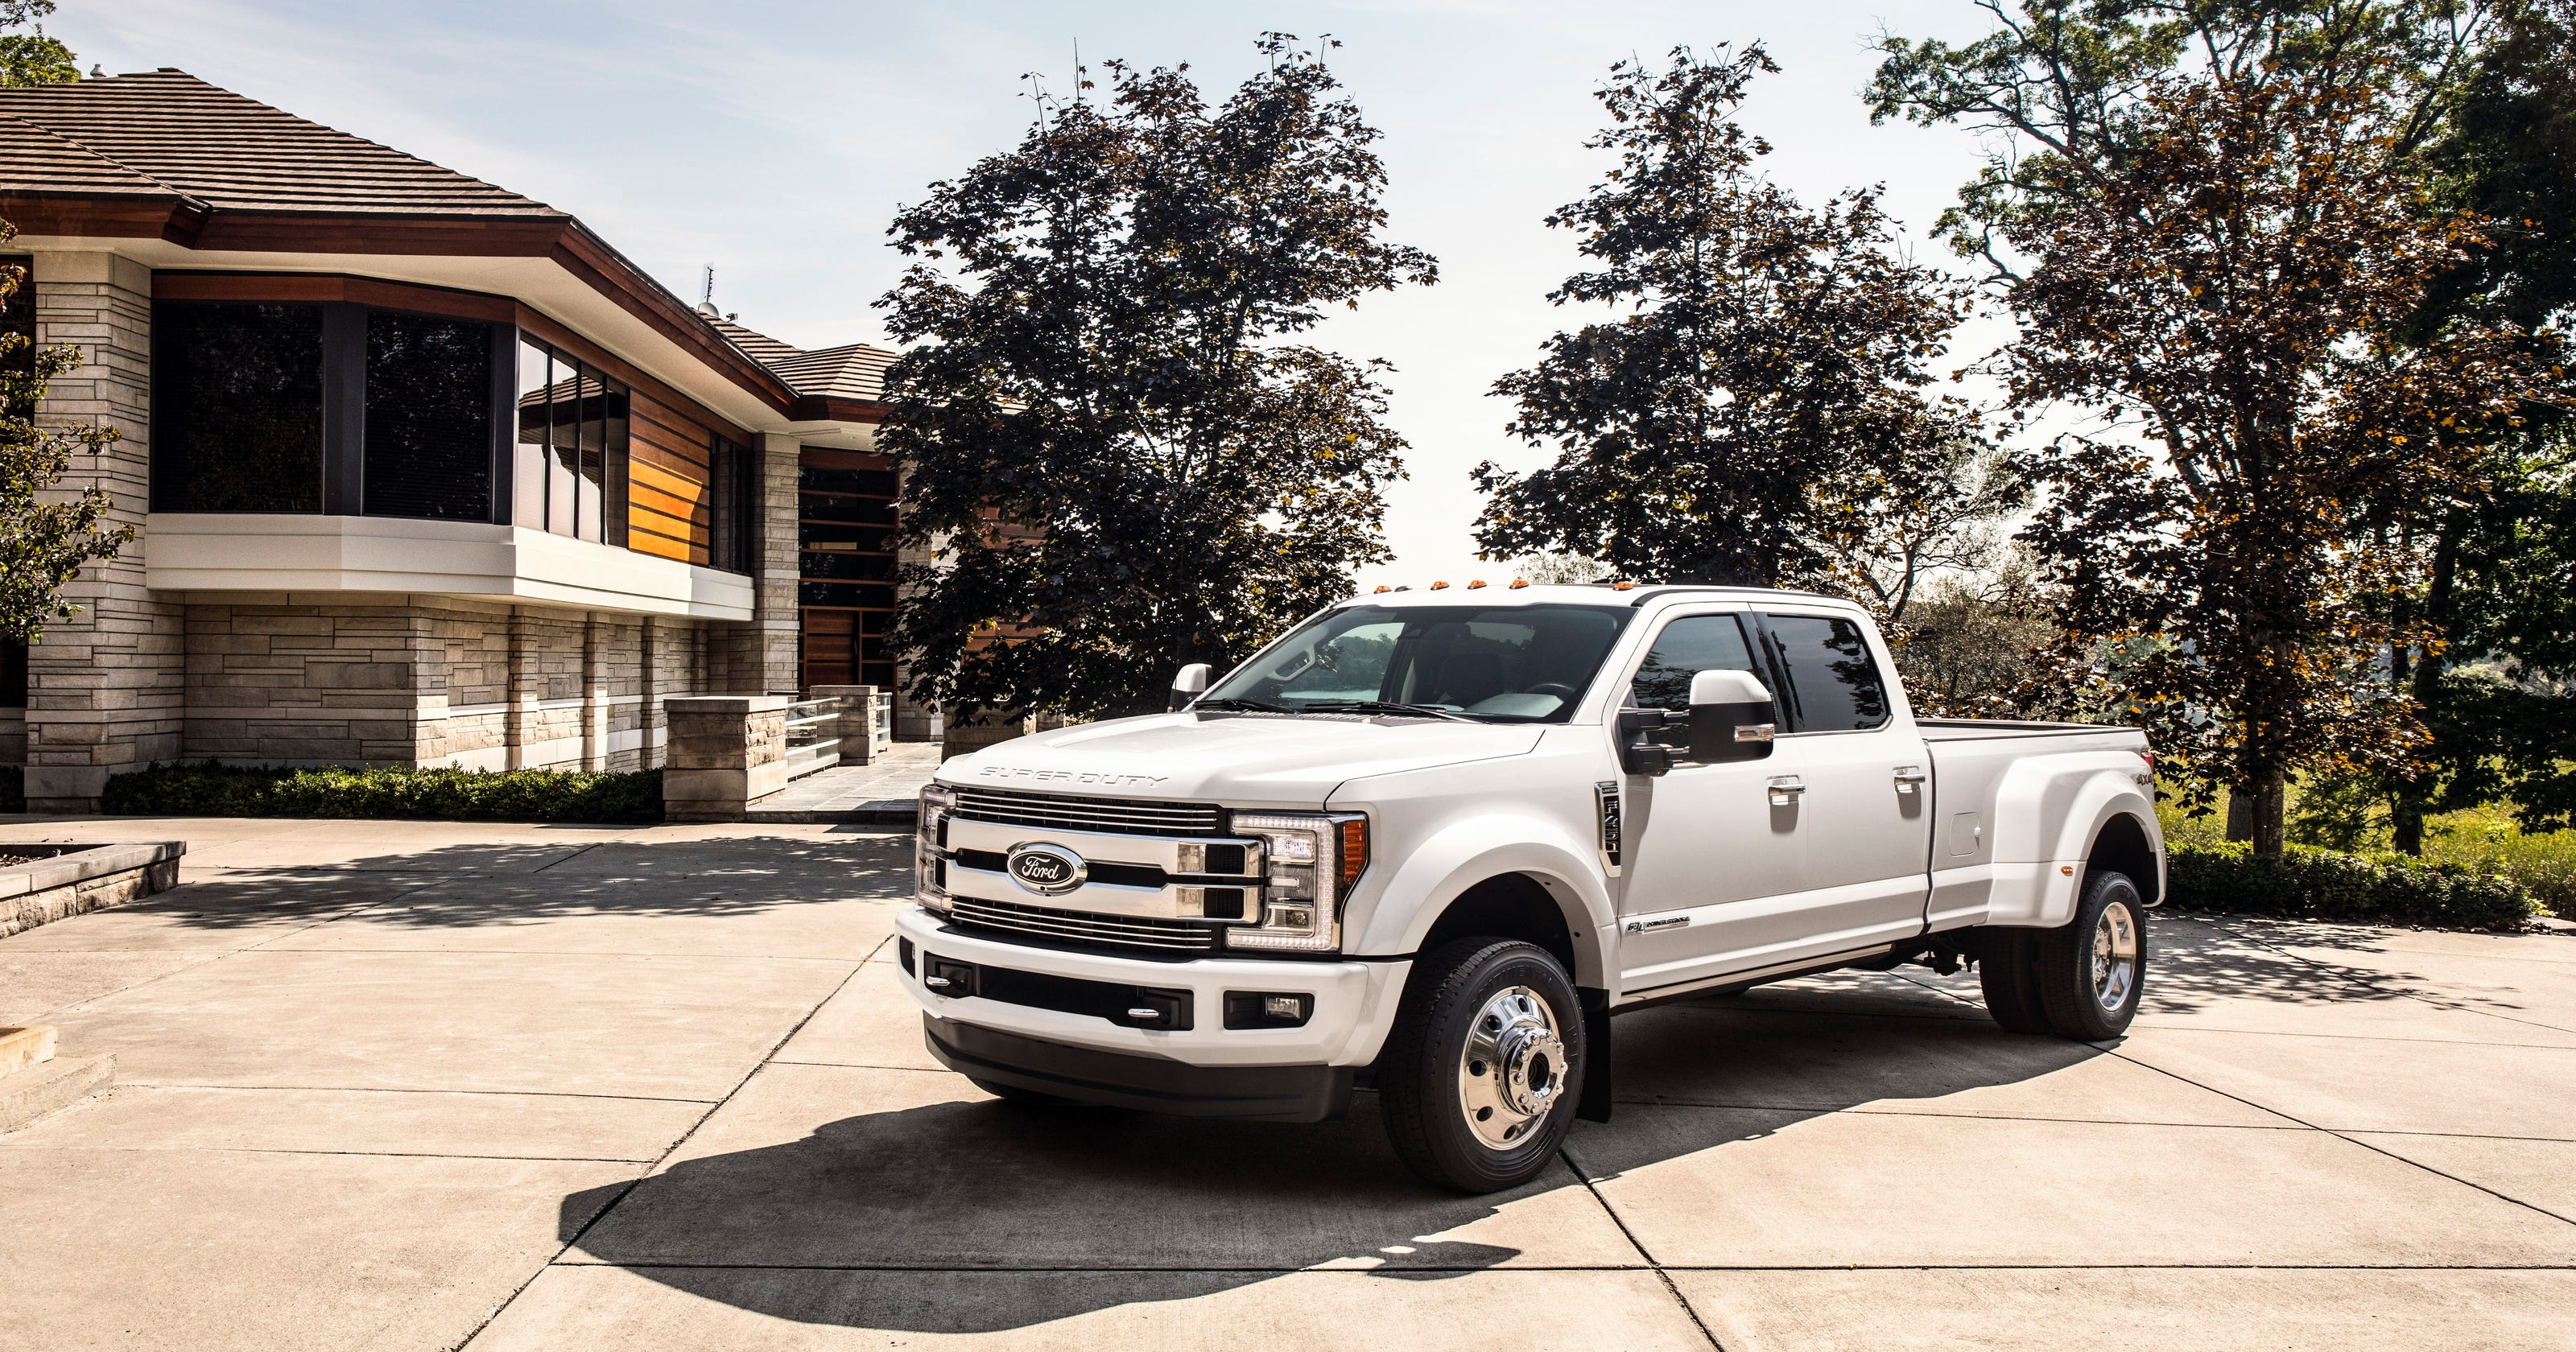 2018 Ford F Series Super Duty Limited Pickup Truck Tops Out At 94000 1955 F100 Interior Seat